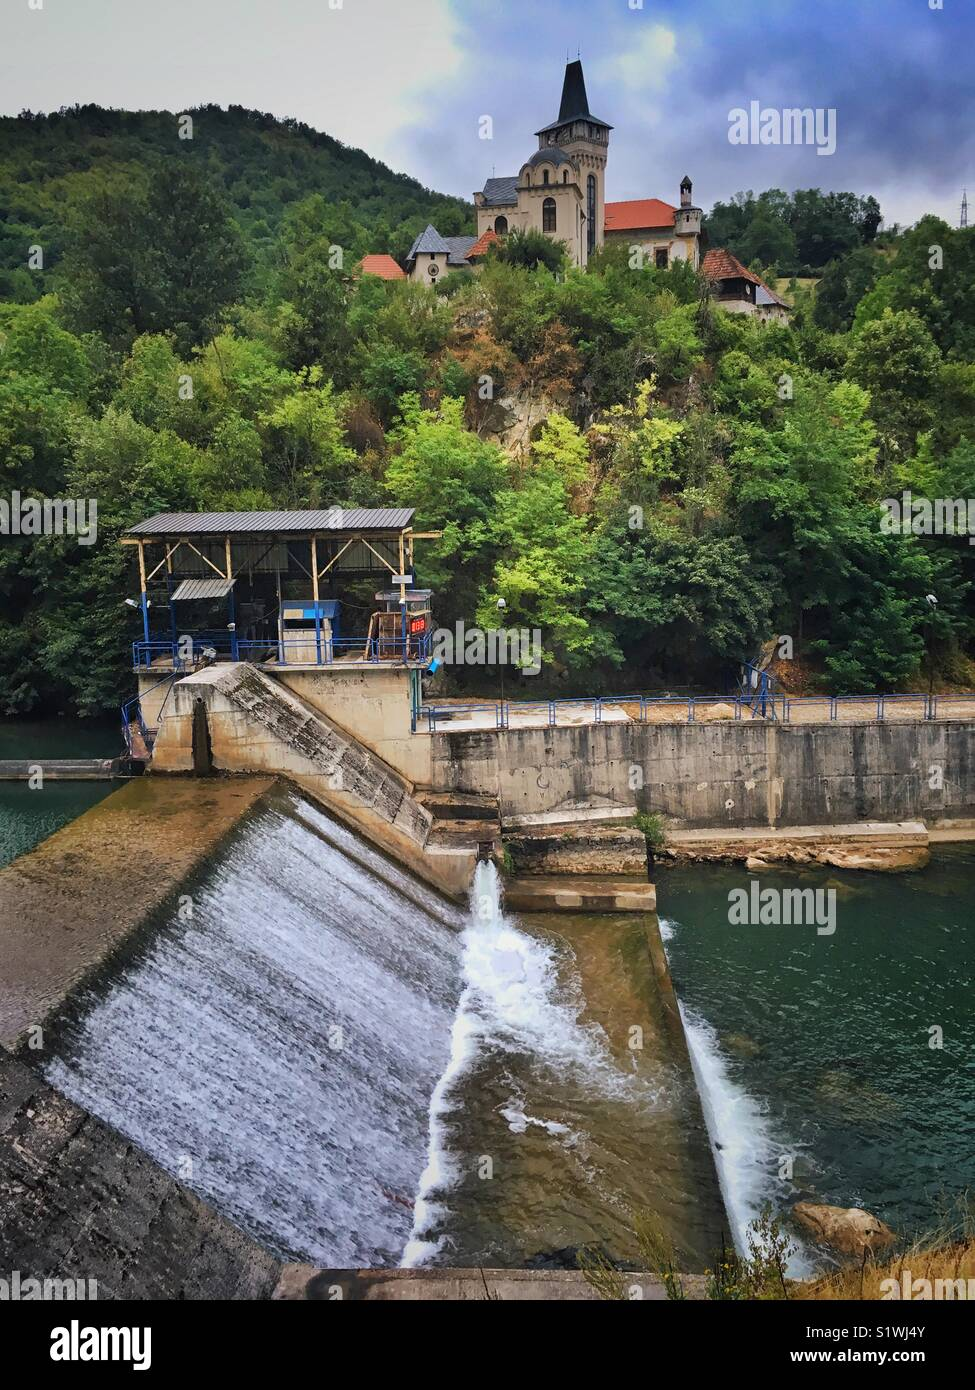 Dam on a Rvaz River near Arilje town in Serbia - Stock Image